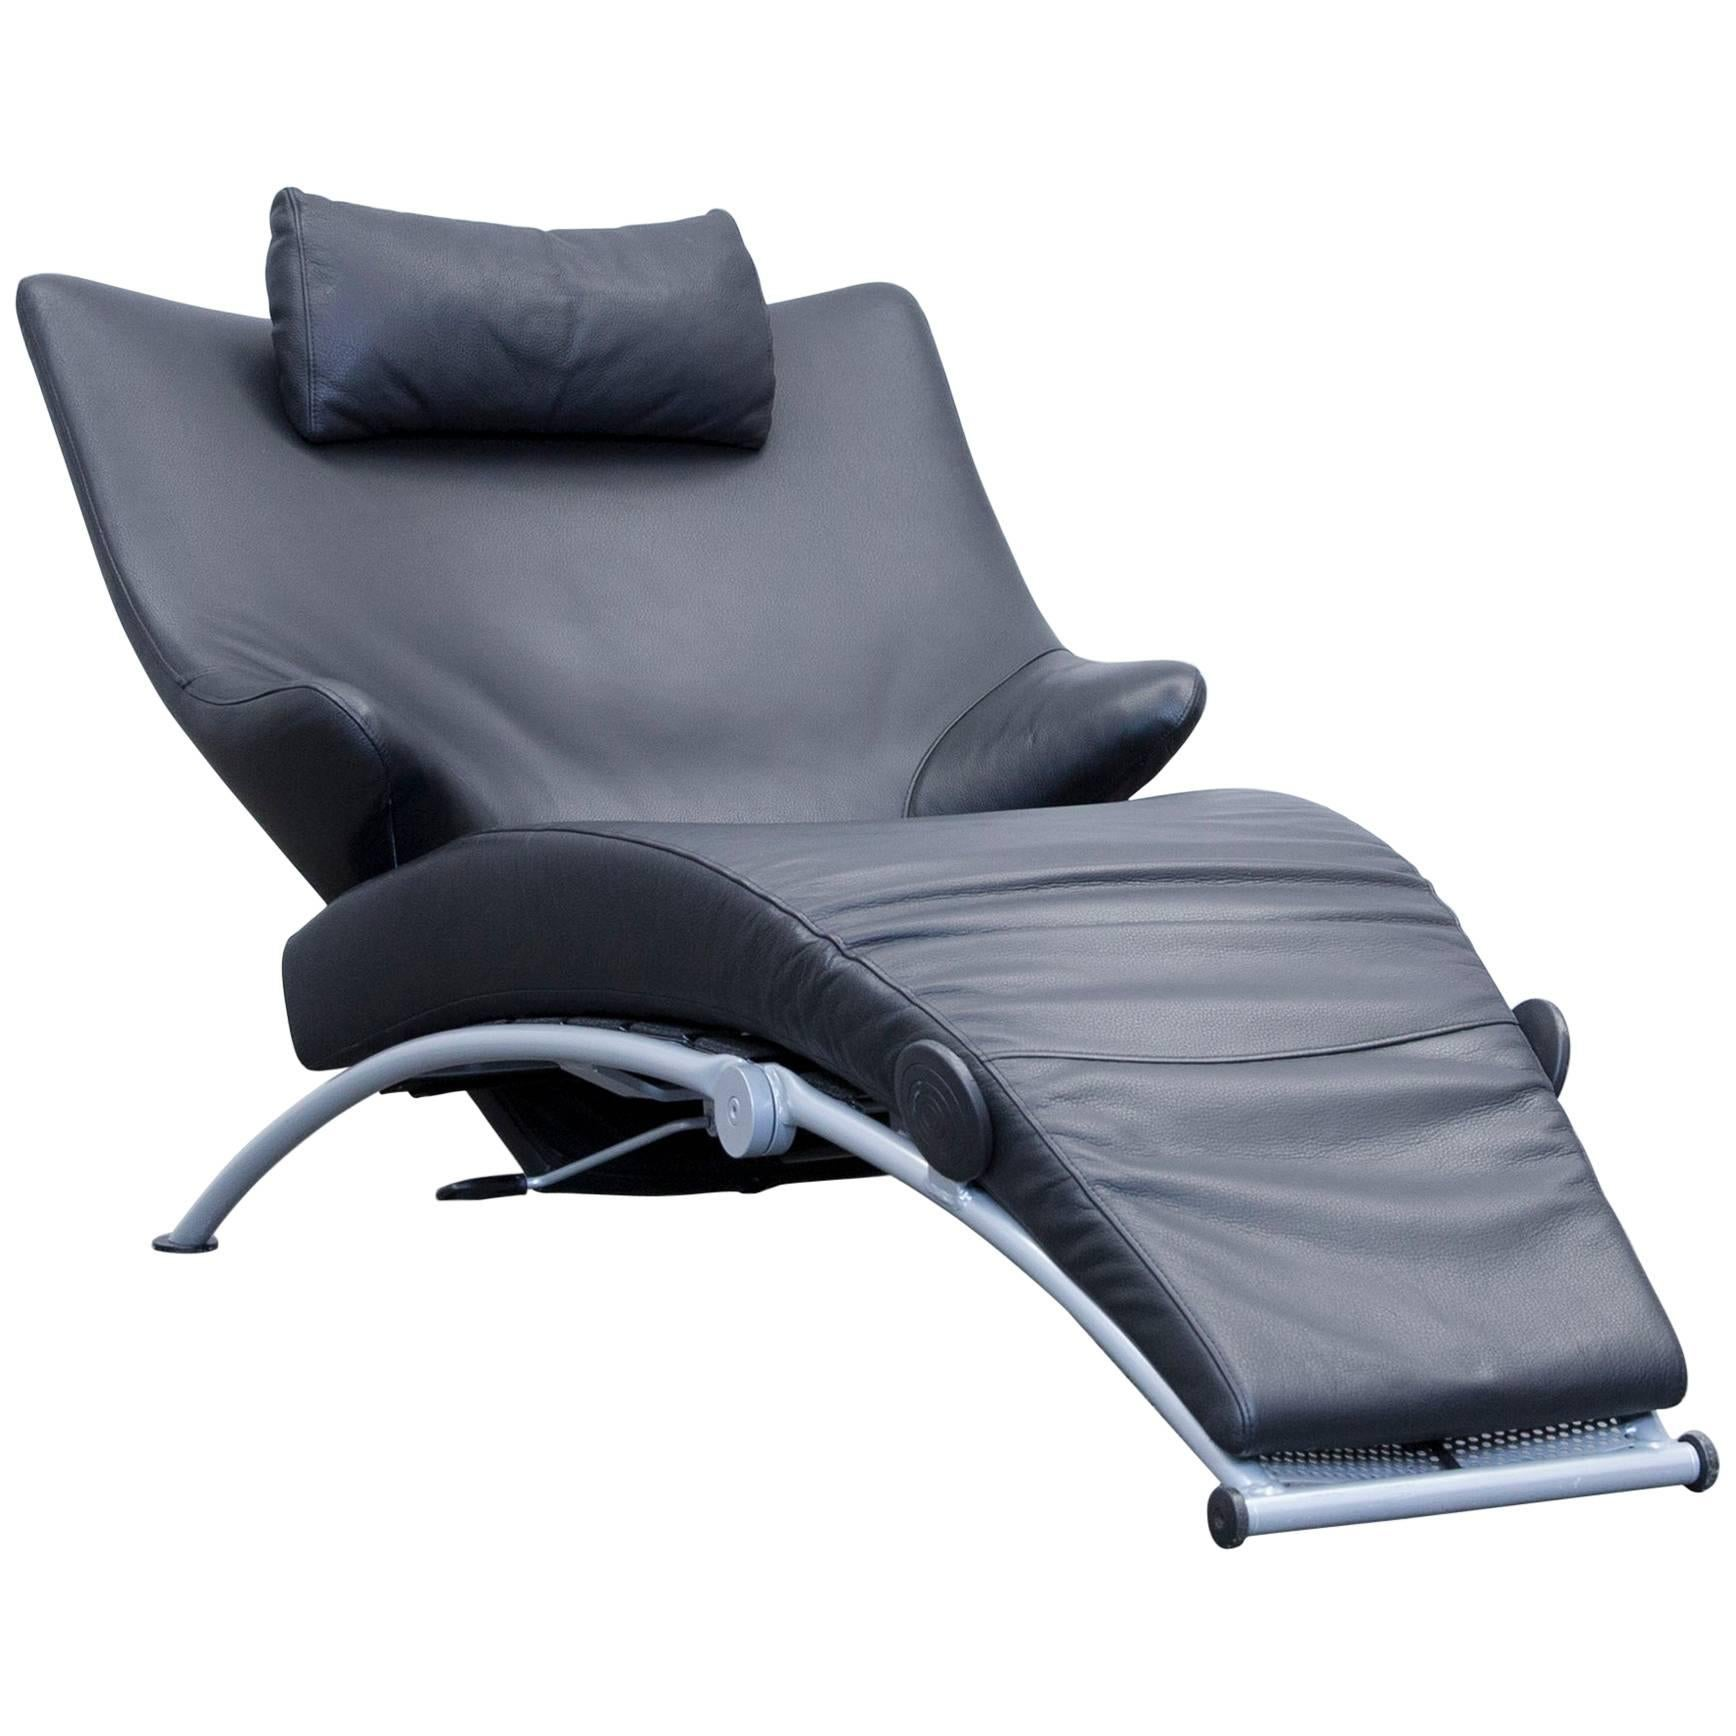 WK Wohnen Solo 699 Designer Lounger Leather Black Chair Function Modern